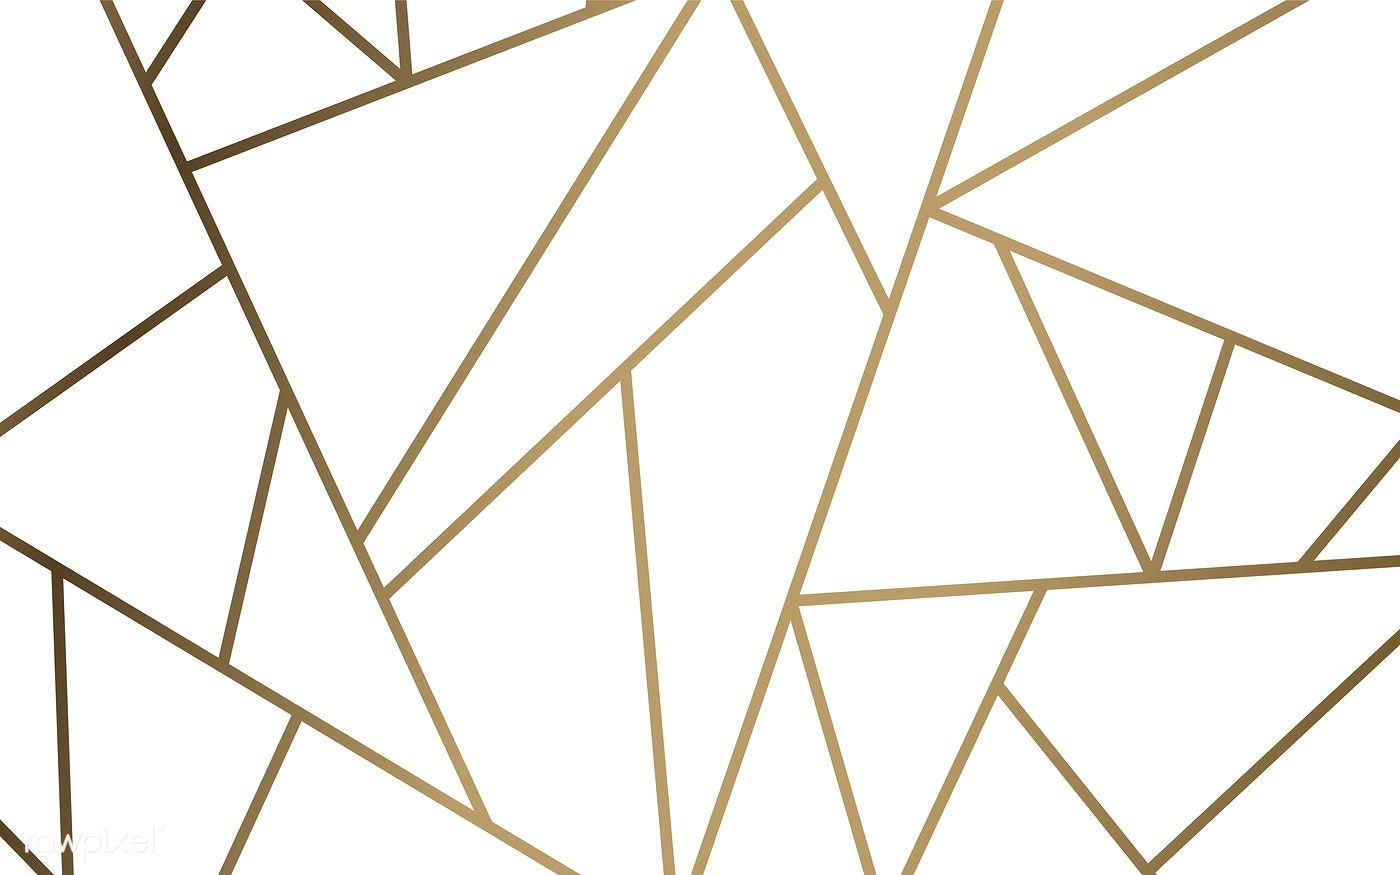 Modern Mosaic Wallpaper In White And Gold Free Image By Rawpixel Com Mosaic Wallpaper Modern Mosaics Mosaic Patterns